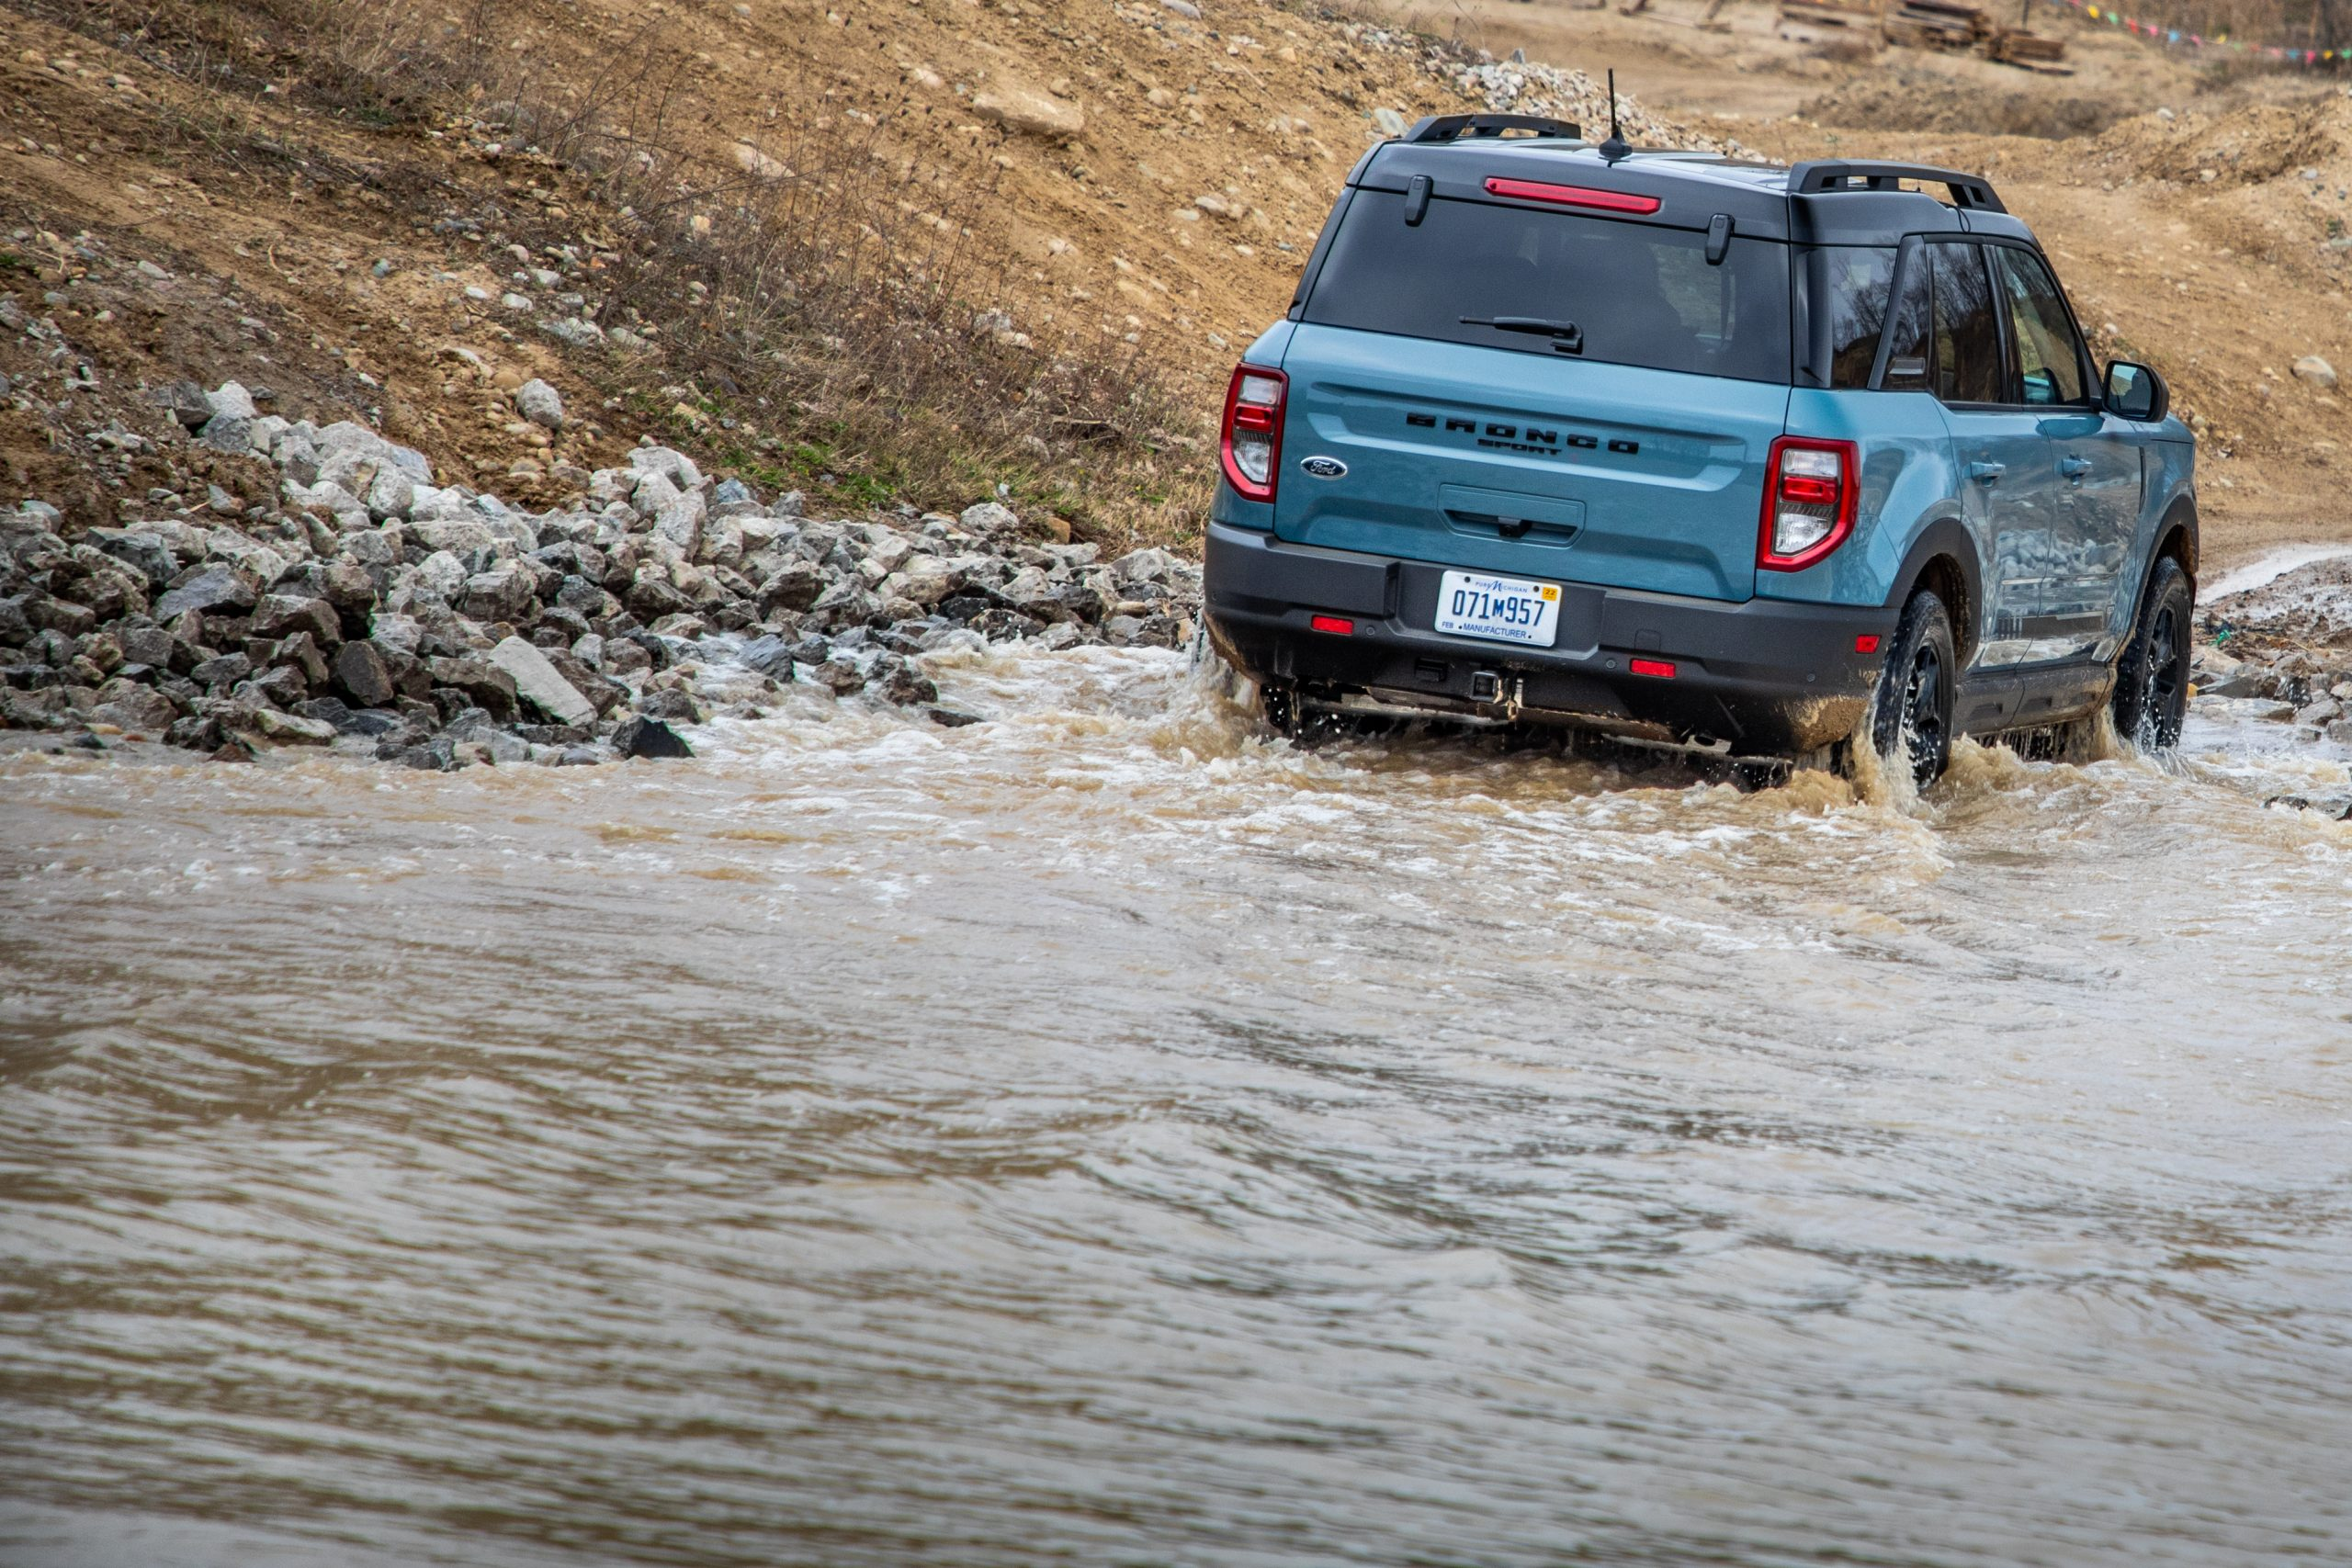 2021 Bronco Sport water fording